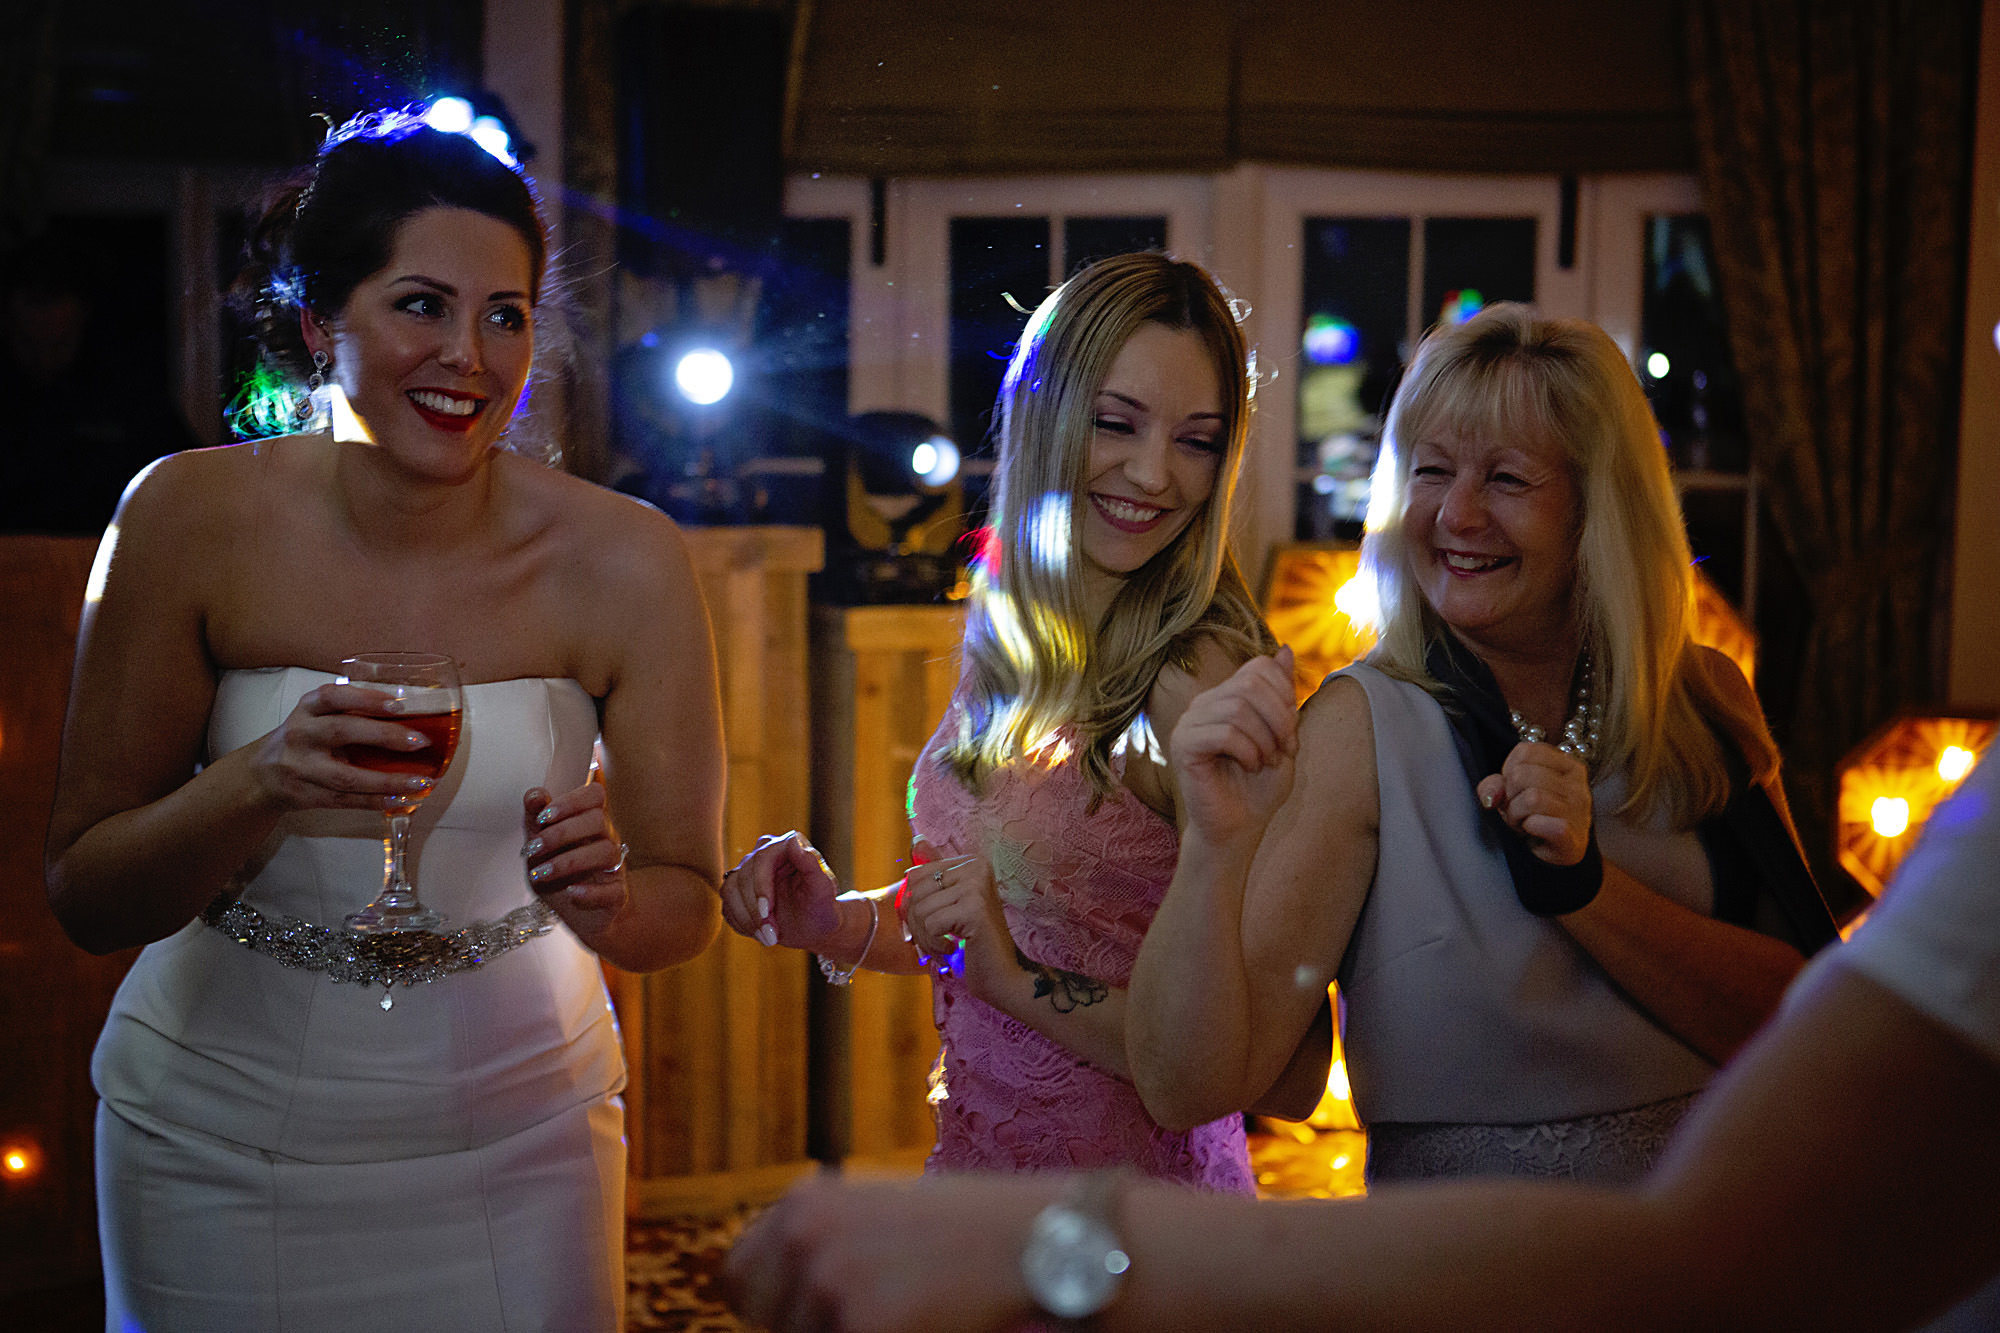 heacham-manor-wedding-photos (53).jpg